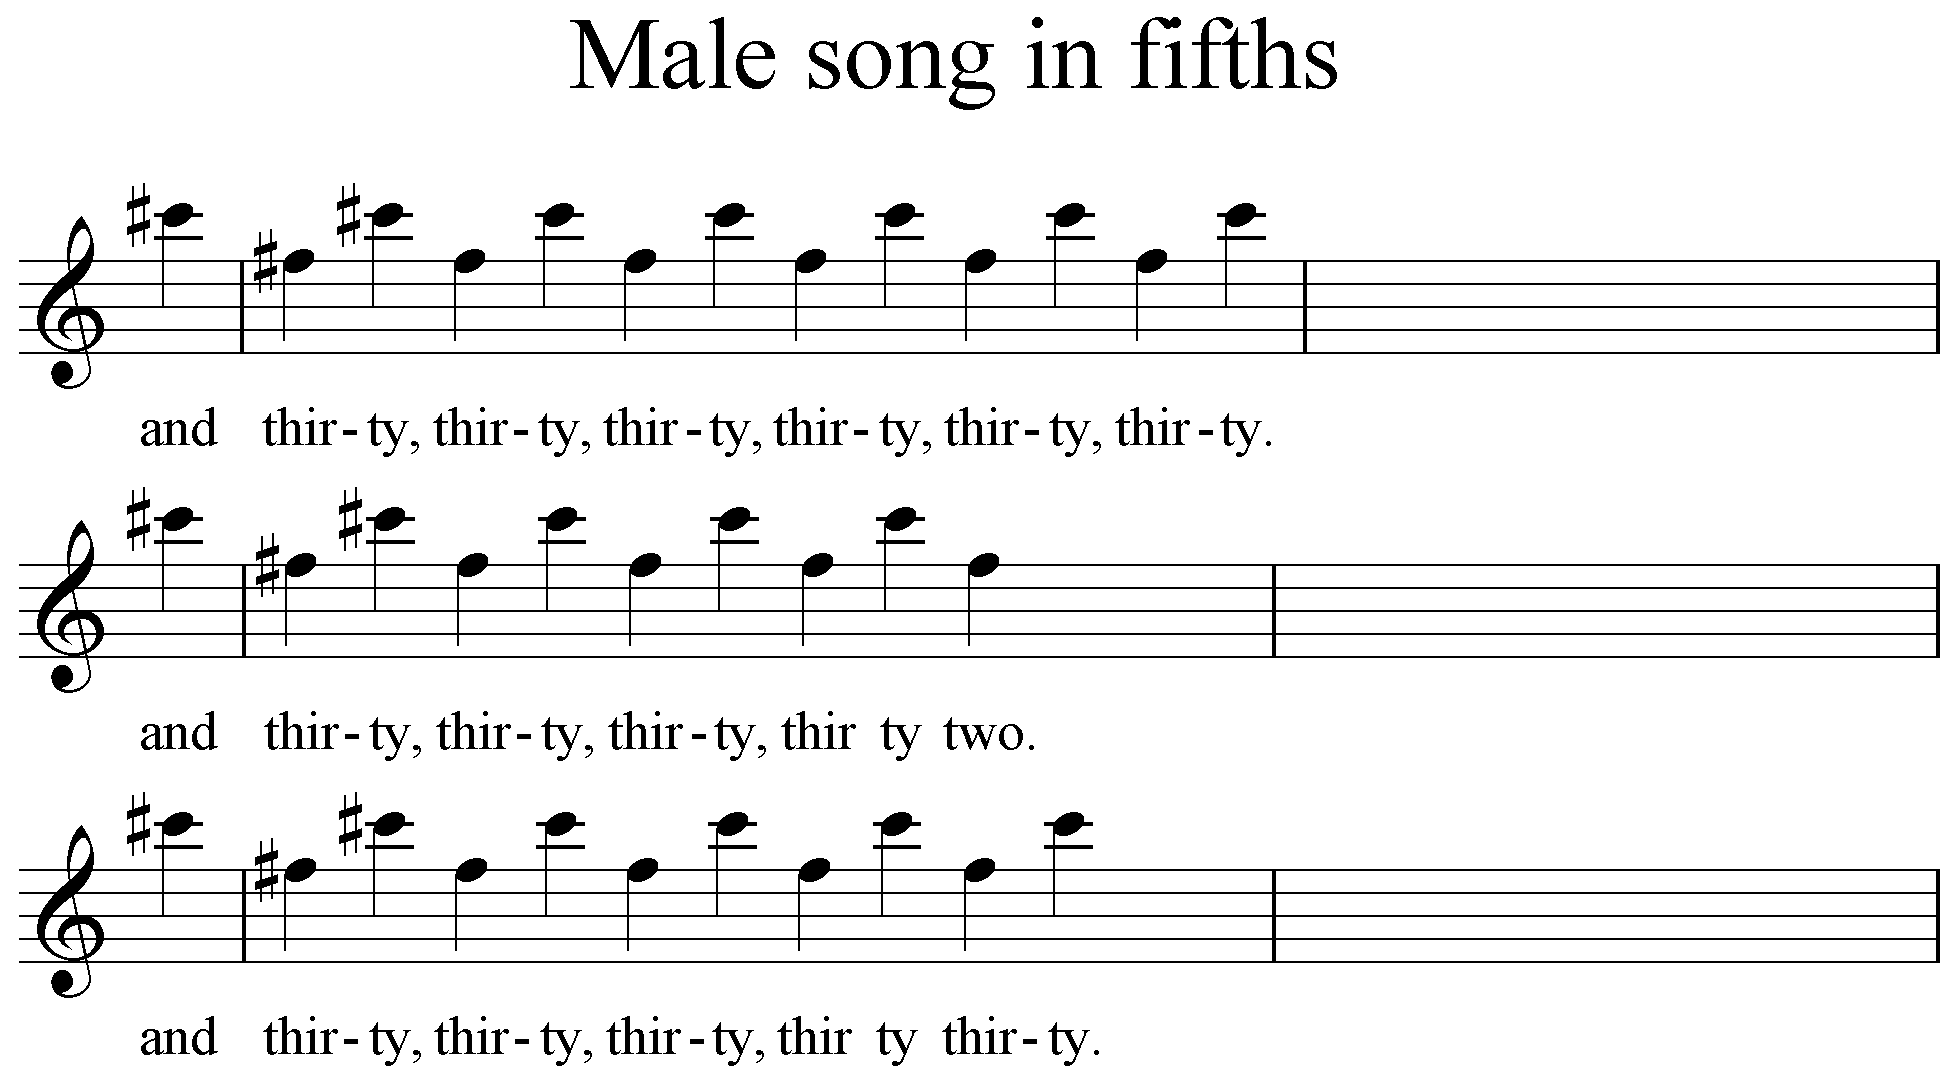 Figure 5 - inverted form of song in fifths